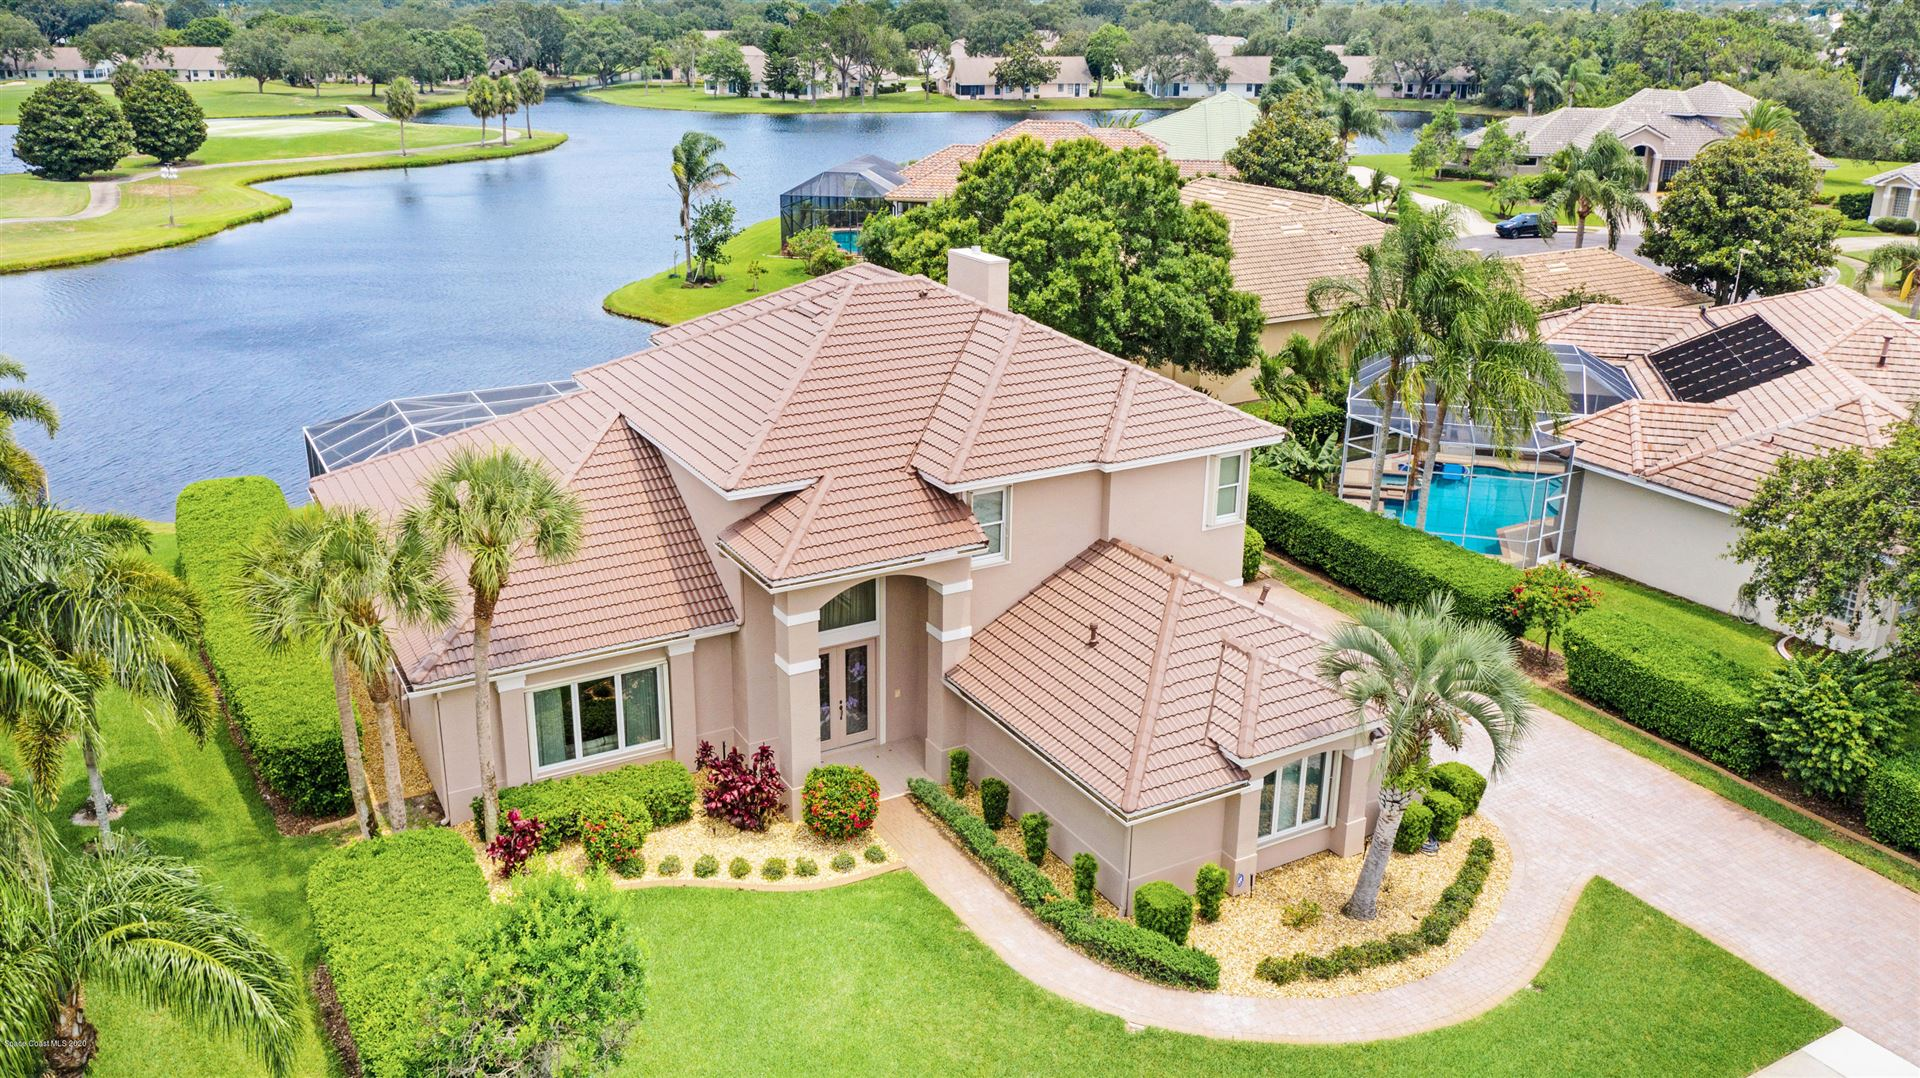 757 Nicklaus Drive, Melbourne, FL 32940 - #: 876936